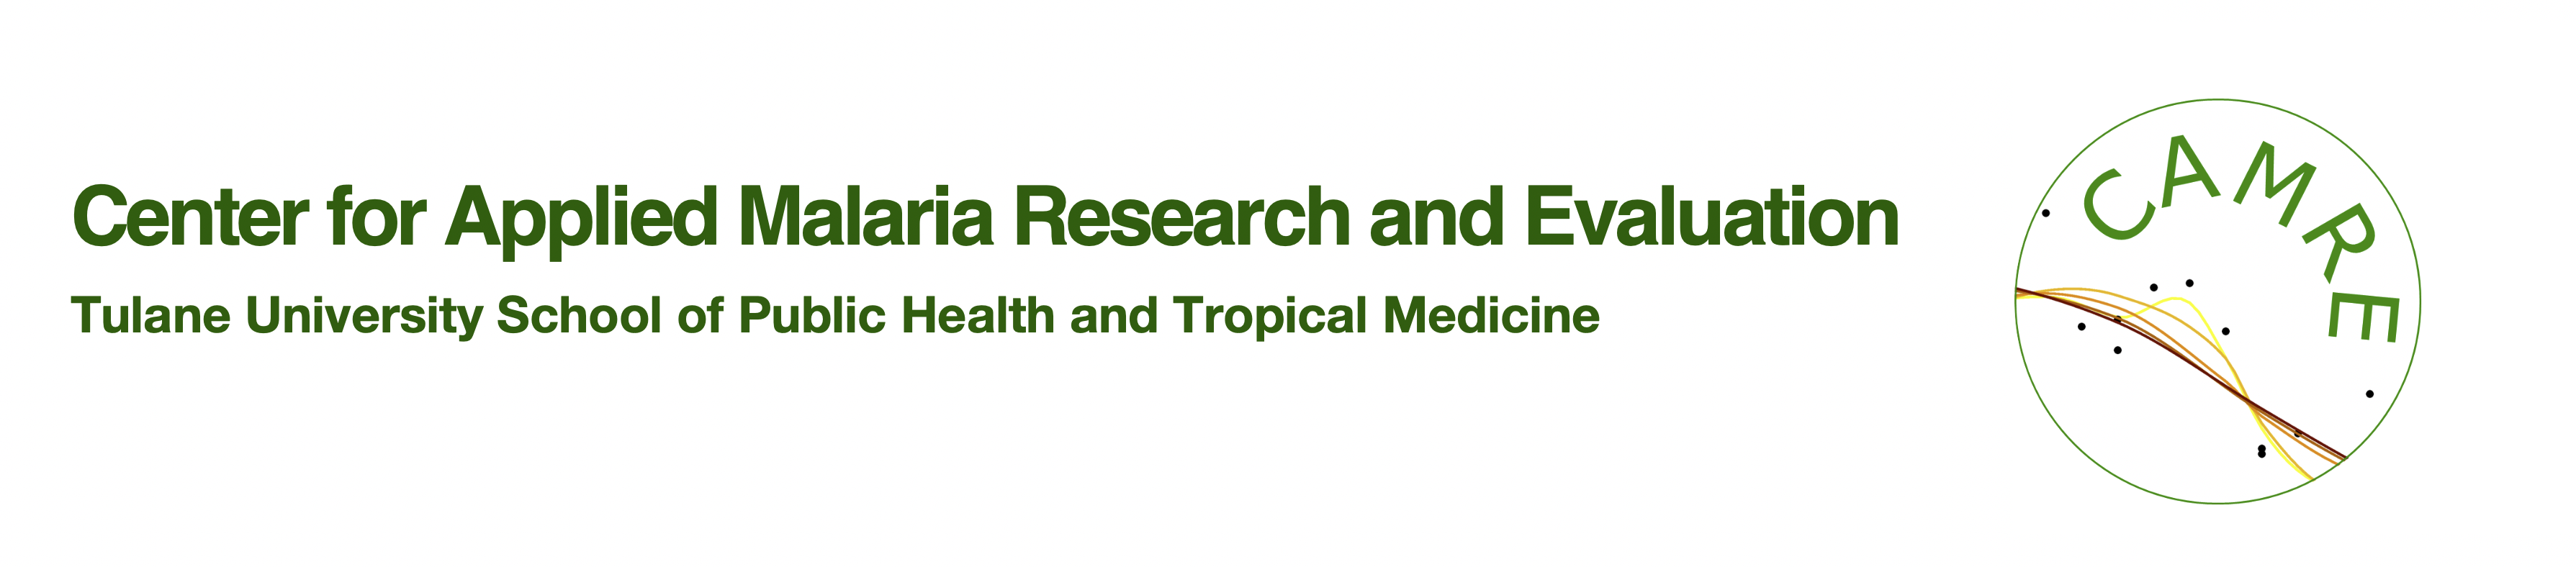 Center for Applied Malaria Research and Evaluation